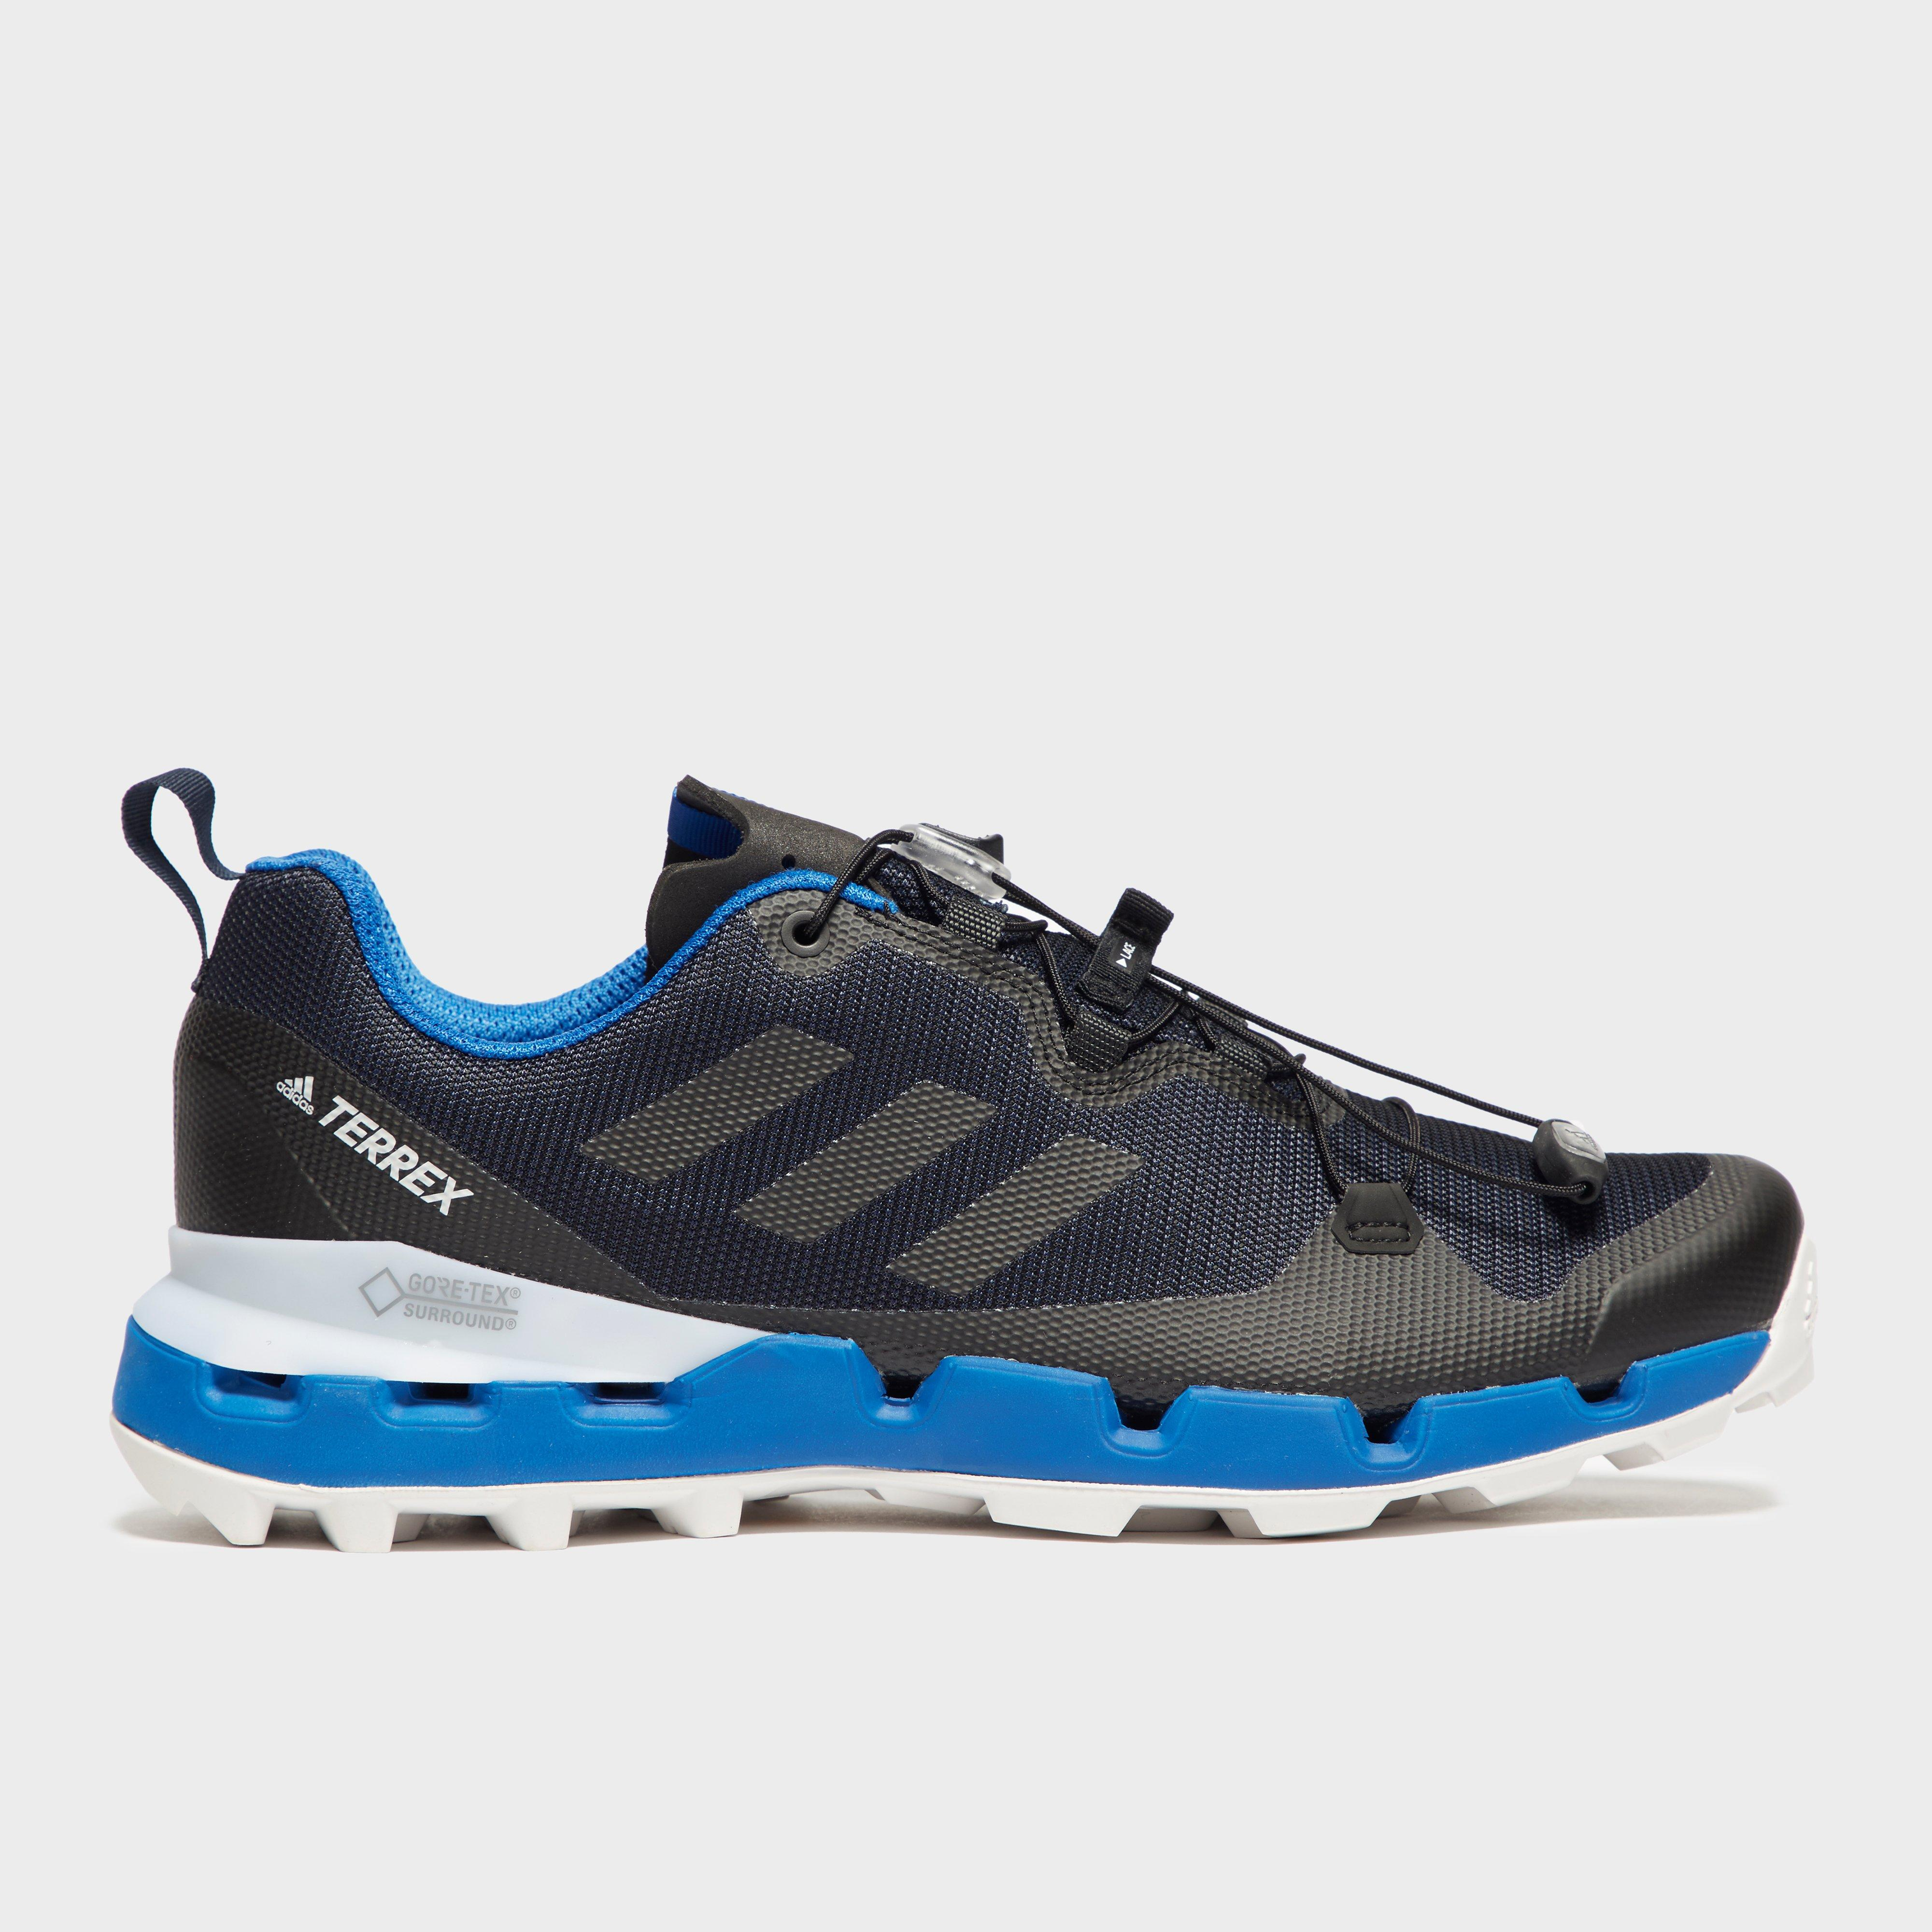 low priced 750b1 05b65 adidas Men s Terrex Fast GORE-TEX® Running Shoes image 1